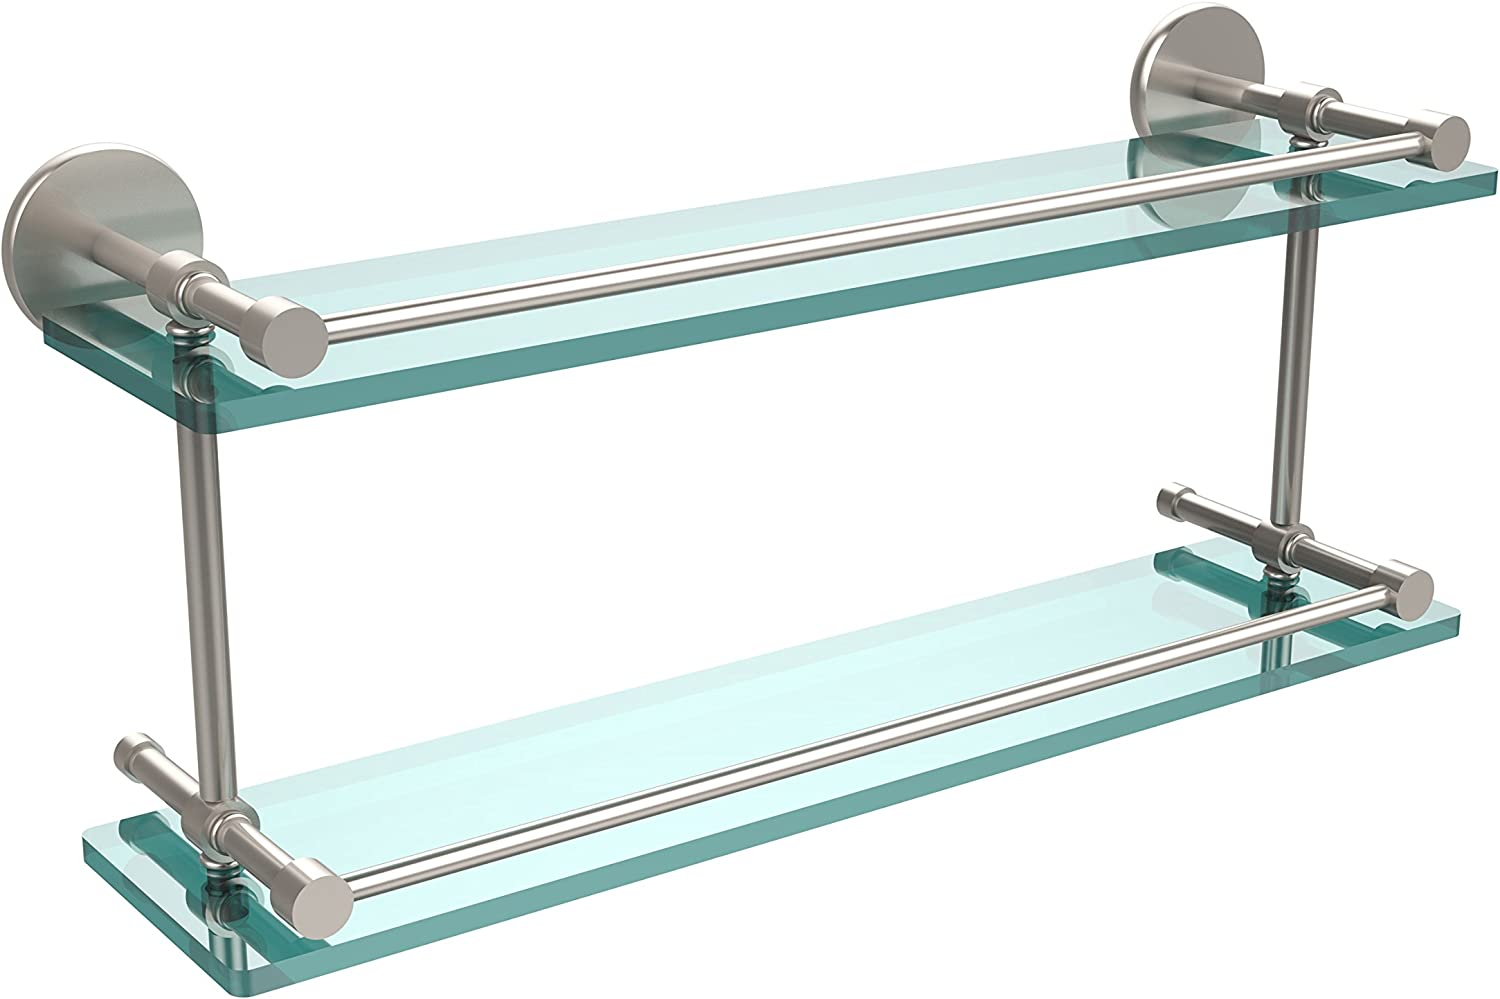 Allied Brass P1000-2 22-GAL-SN 22 Inch Tempered Double Glass Shelf with Gallery Rail, Satin Nickel